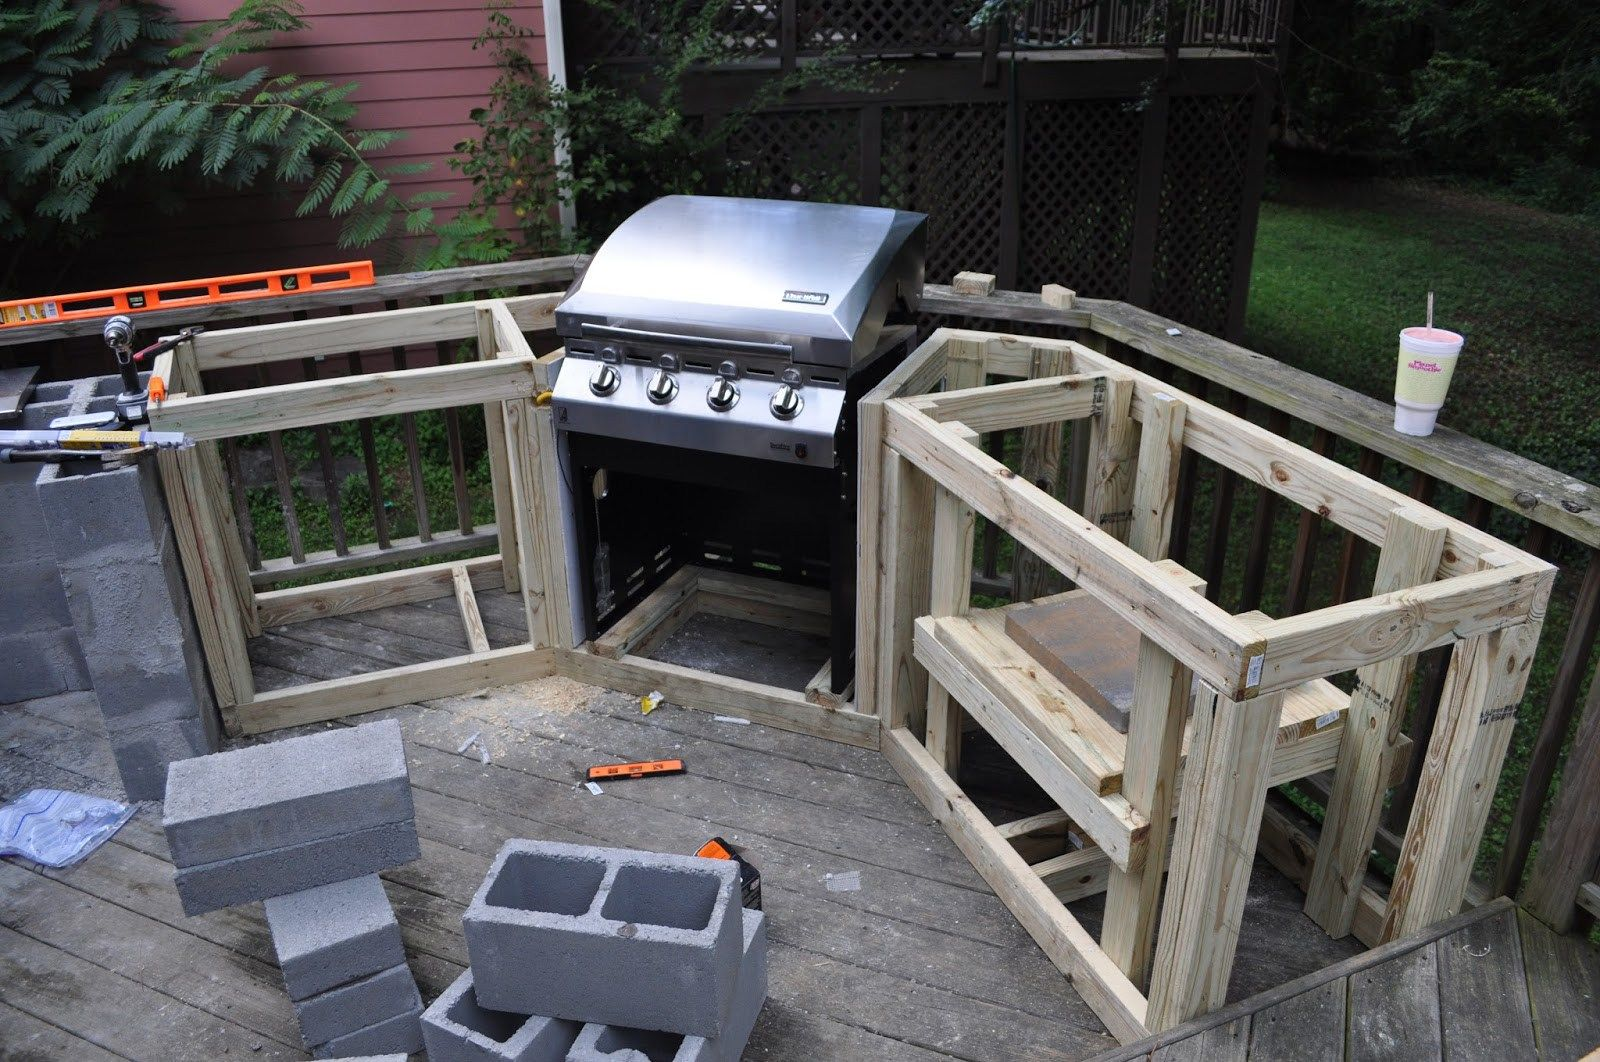 How To Build An Outdoor Kitchen With Wood Frame Simple Tips On 16 Examples Of Barbecue